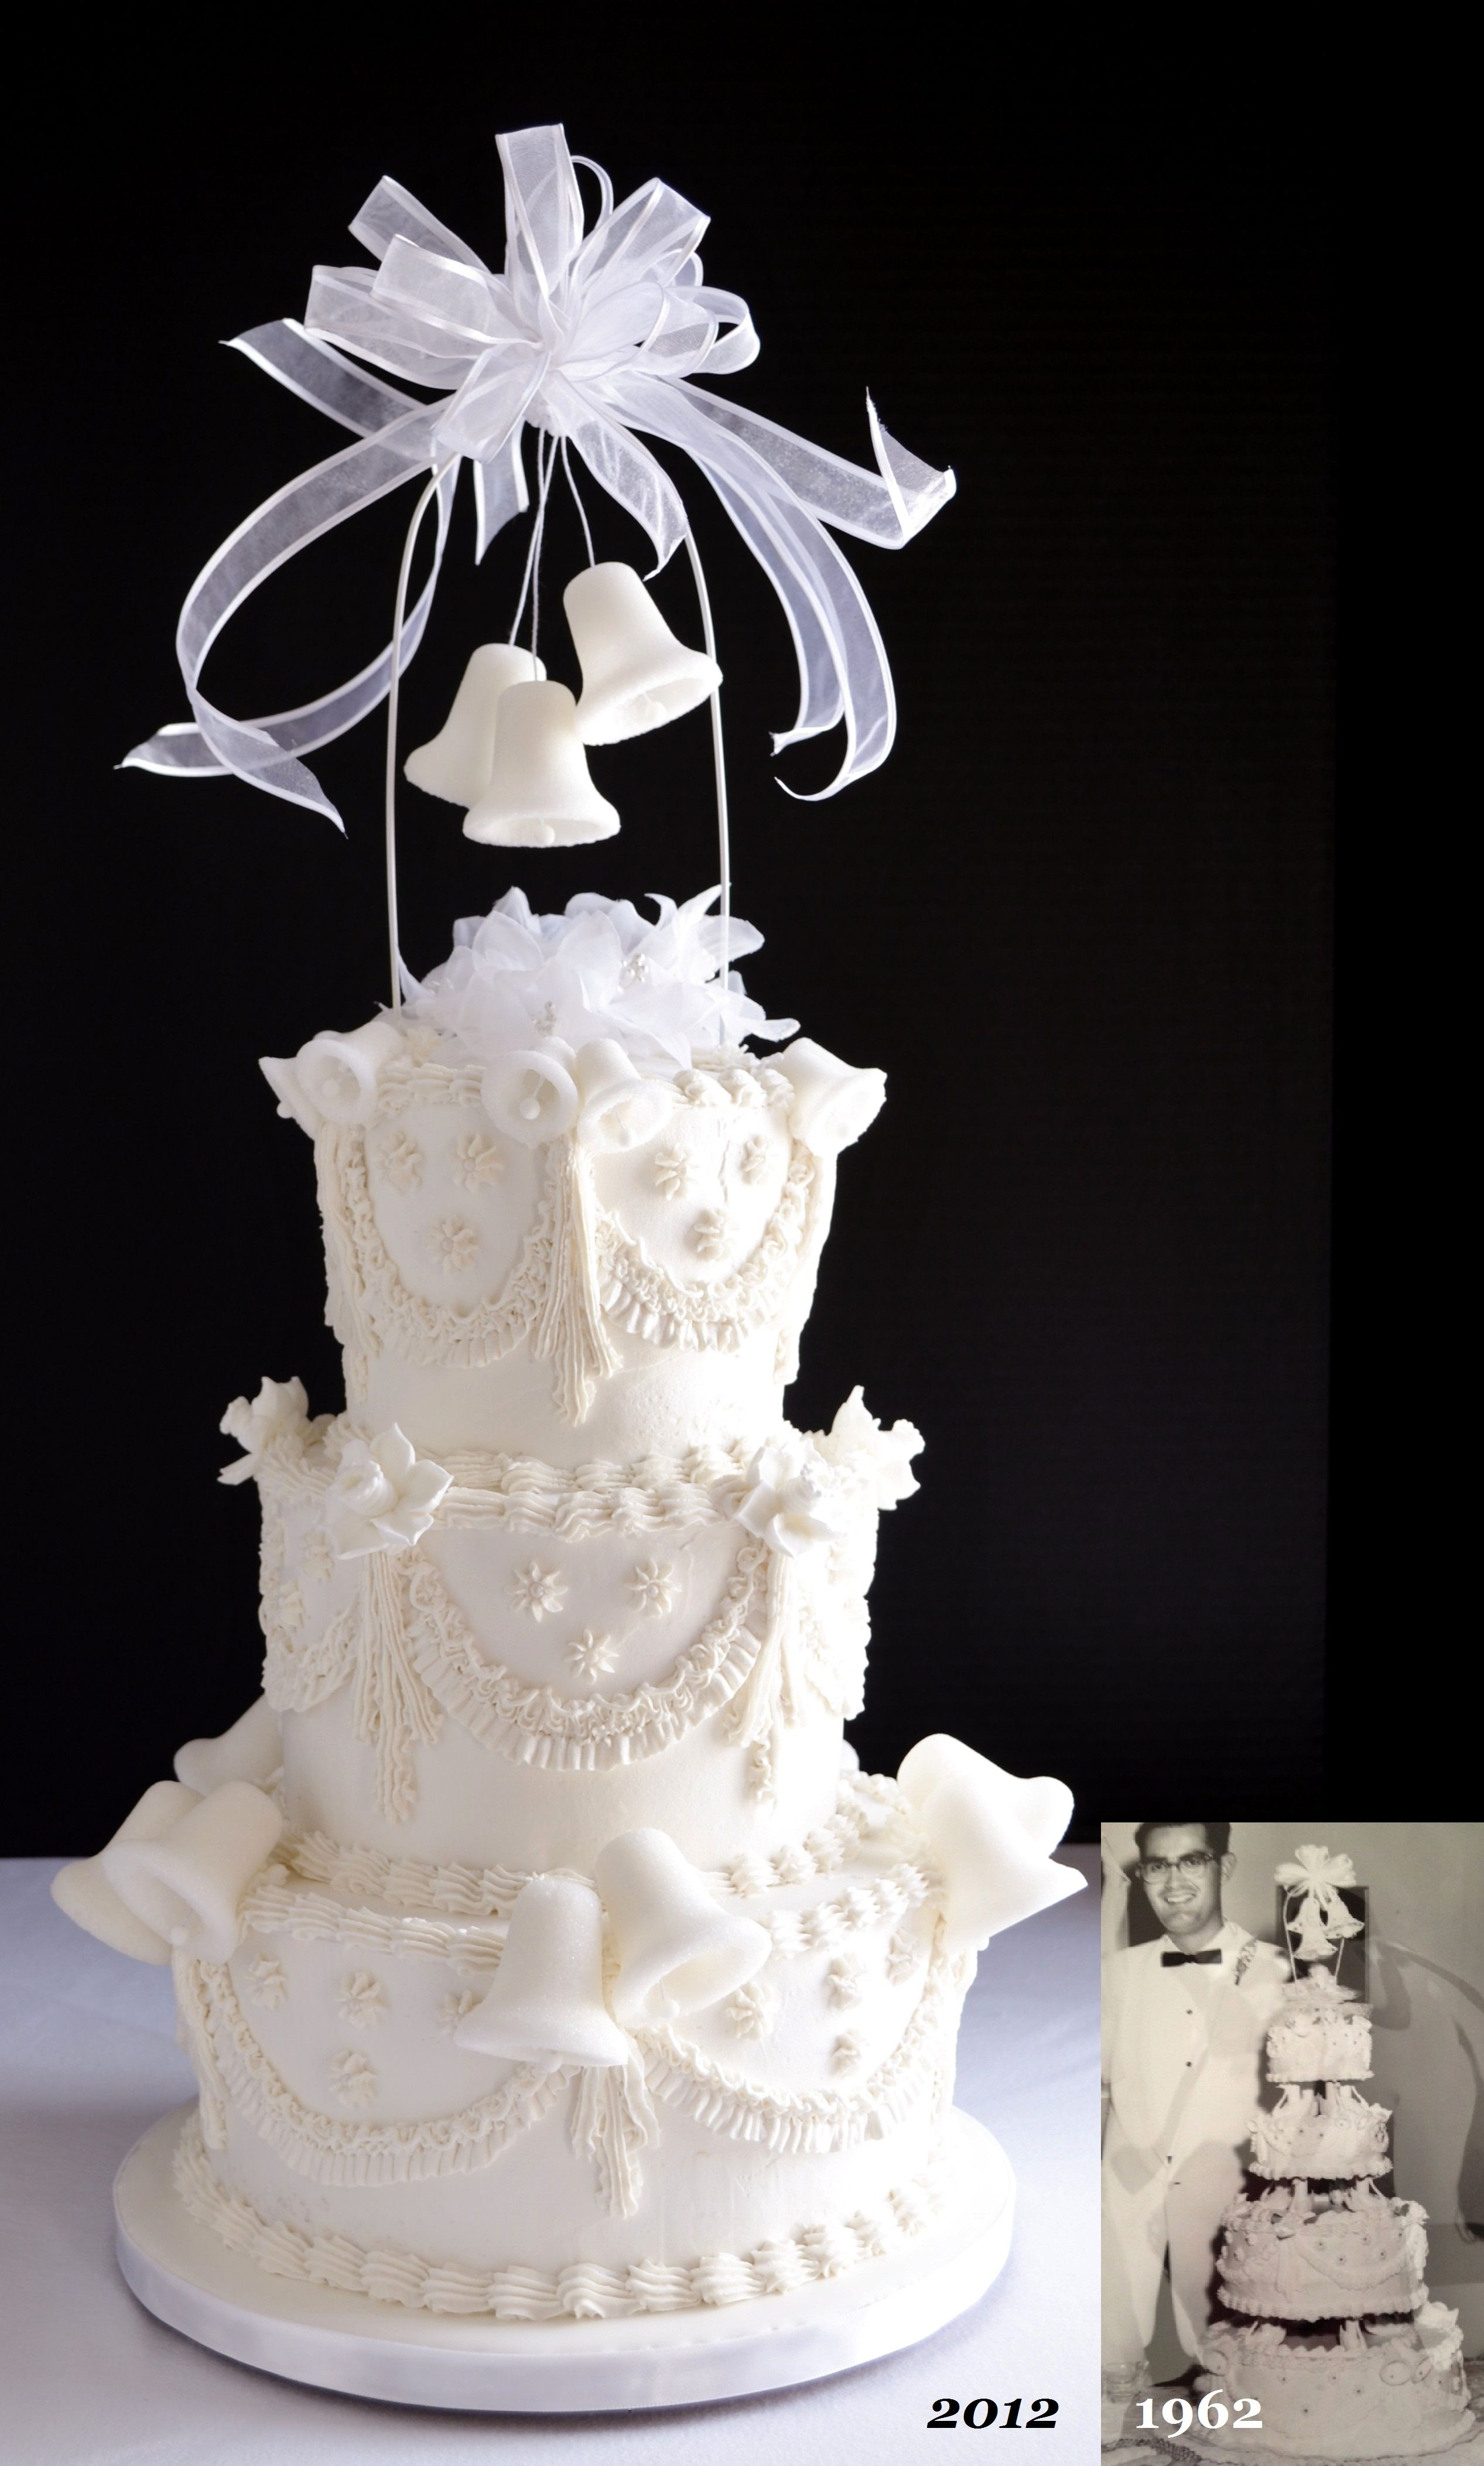 Retro 50th wedding anniversary cake from the last century bells retro wedding anniversary cake from the last century bells held their place as the iconic wedding symbol for a few decades biocorpaavc Image collections